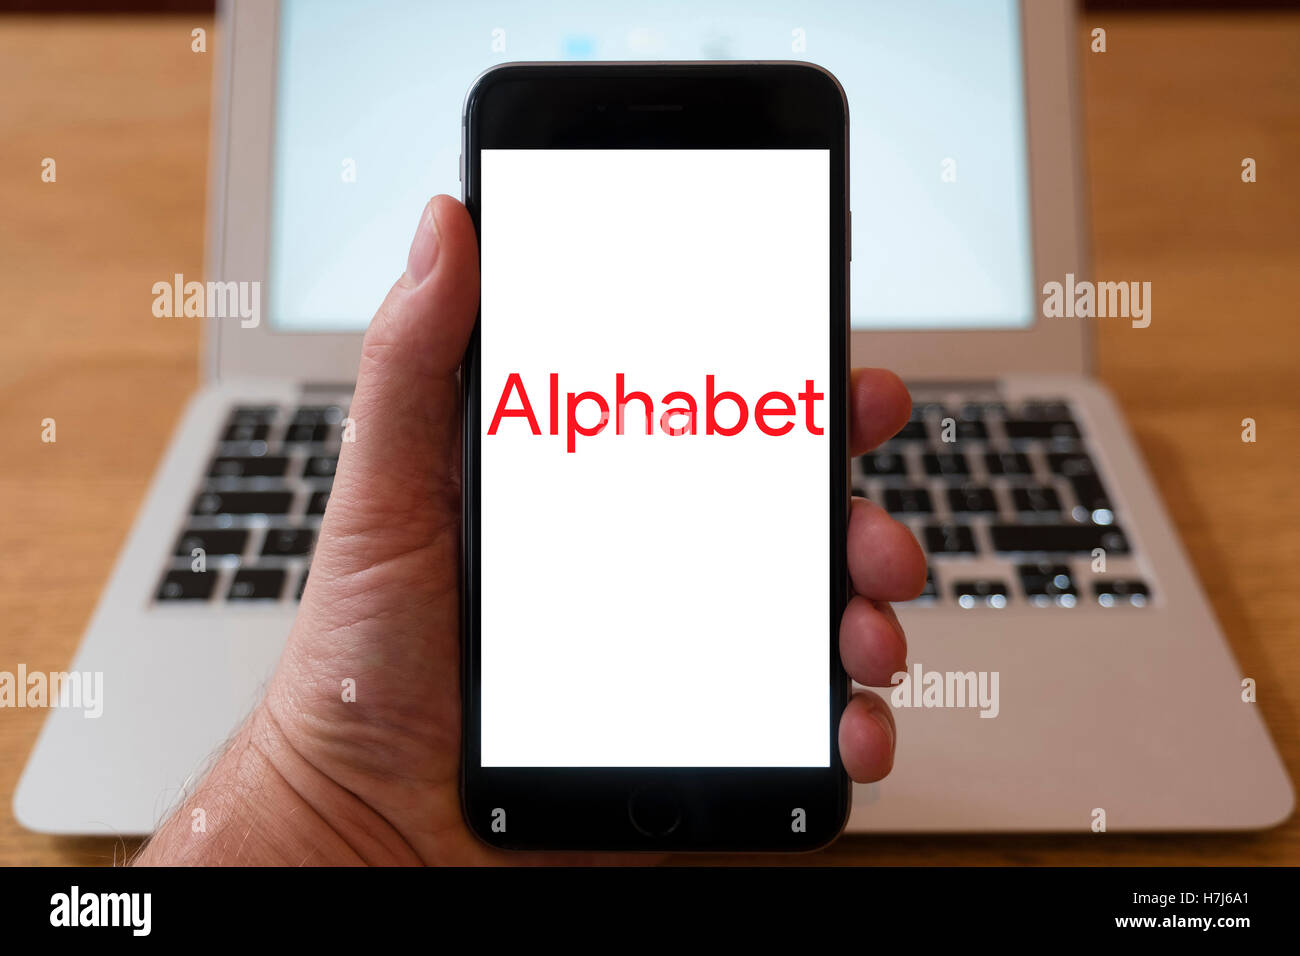 Using iPhone smart phone to display logo of Alphabet multinational conglomerate from Google Stock Photo